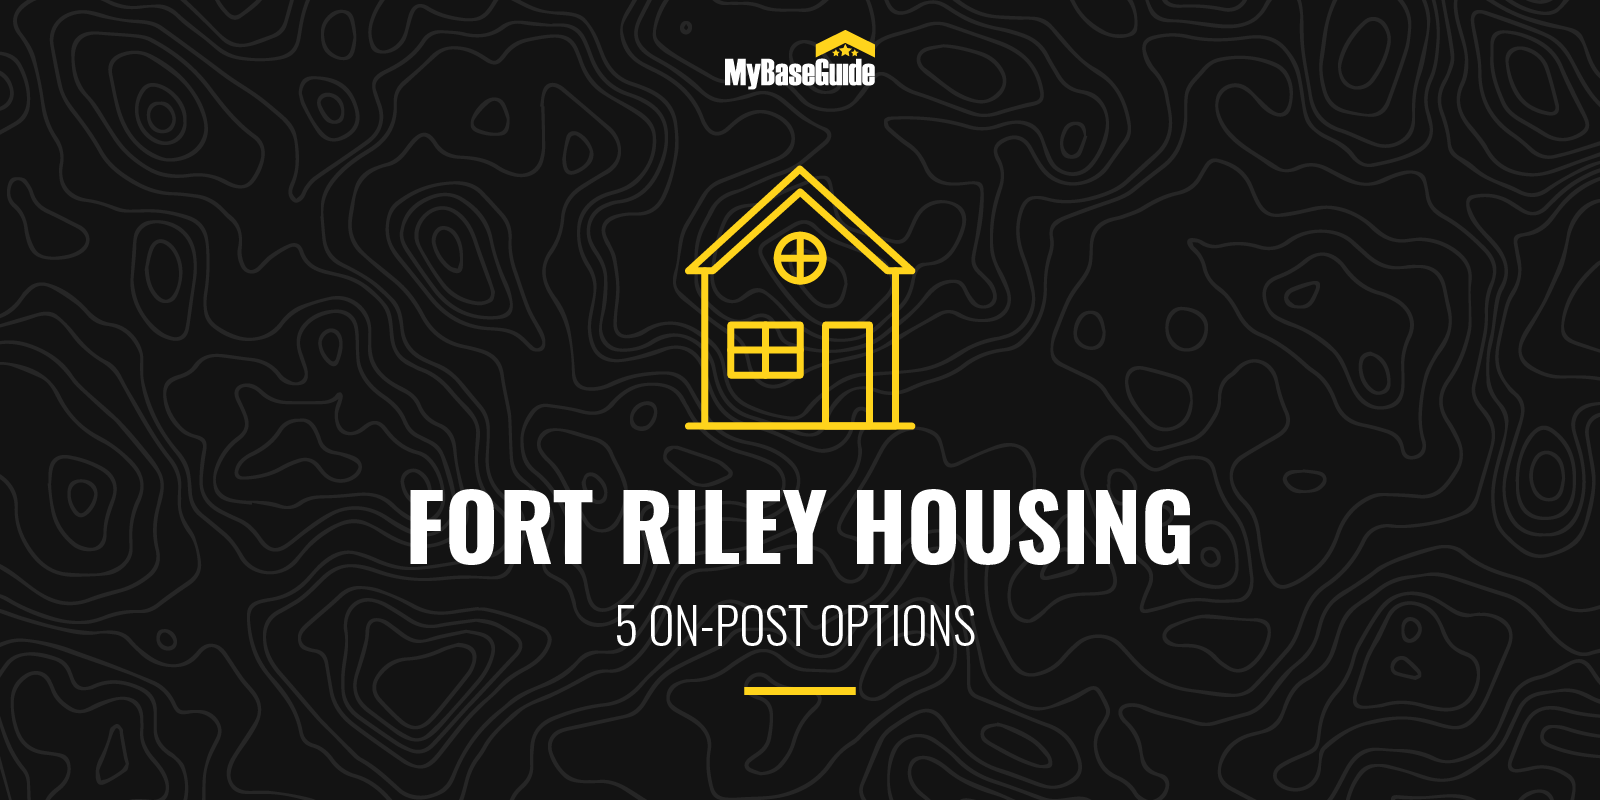 Fort Riley Housing: 5 On Post Options